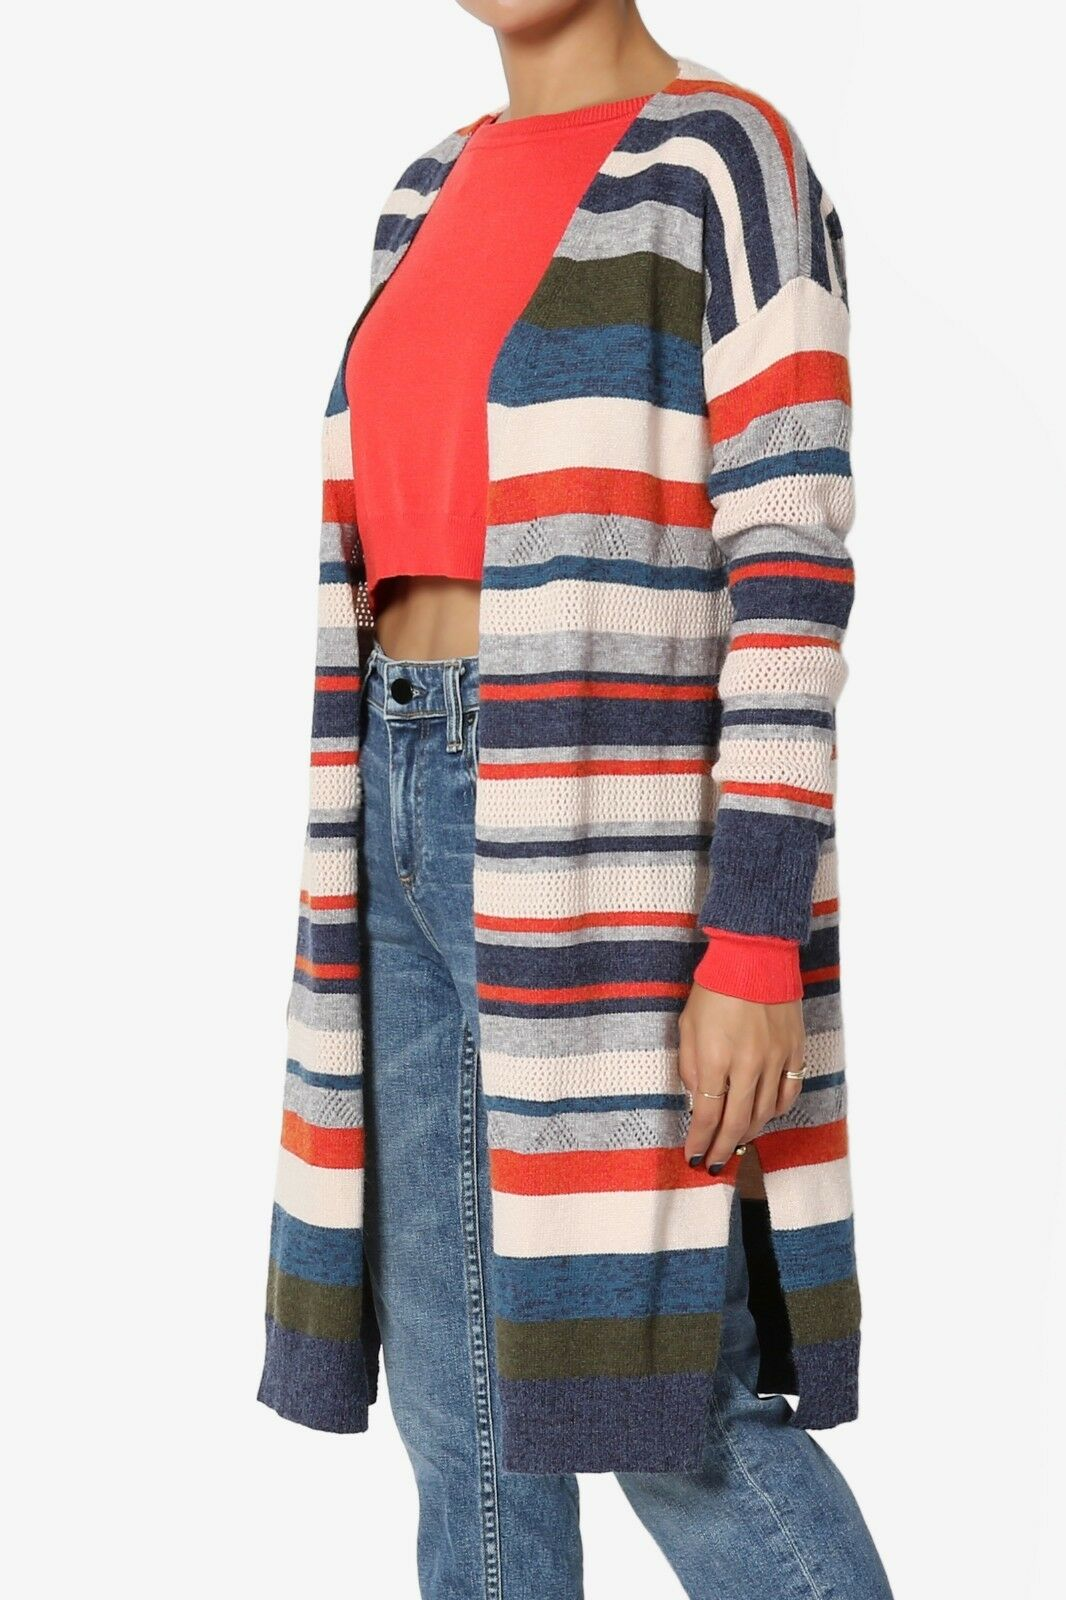 TheMogan Off-Duty Off-Duty Off-Duty Multi color Stripe Knit Long Sleeve Longline Open Cardigan fae22c